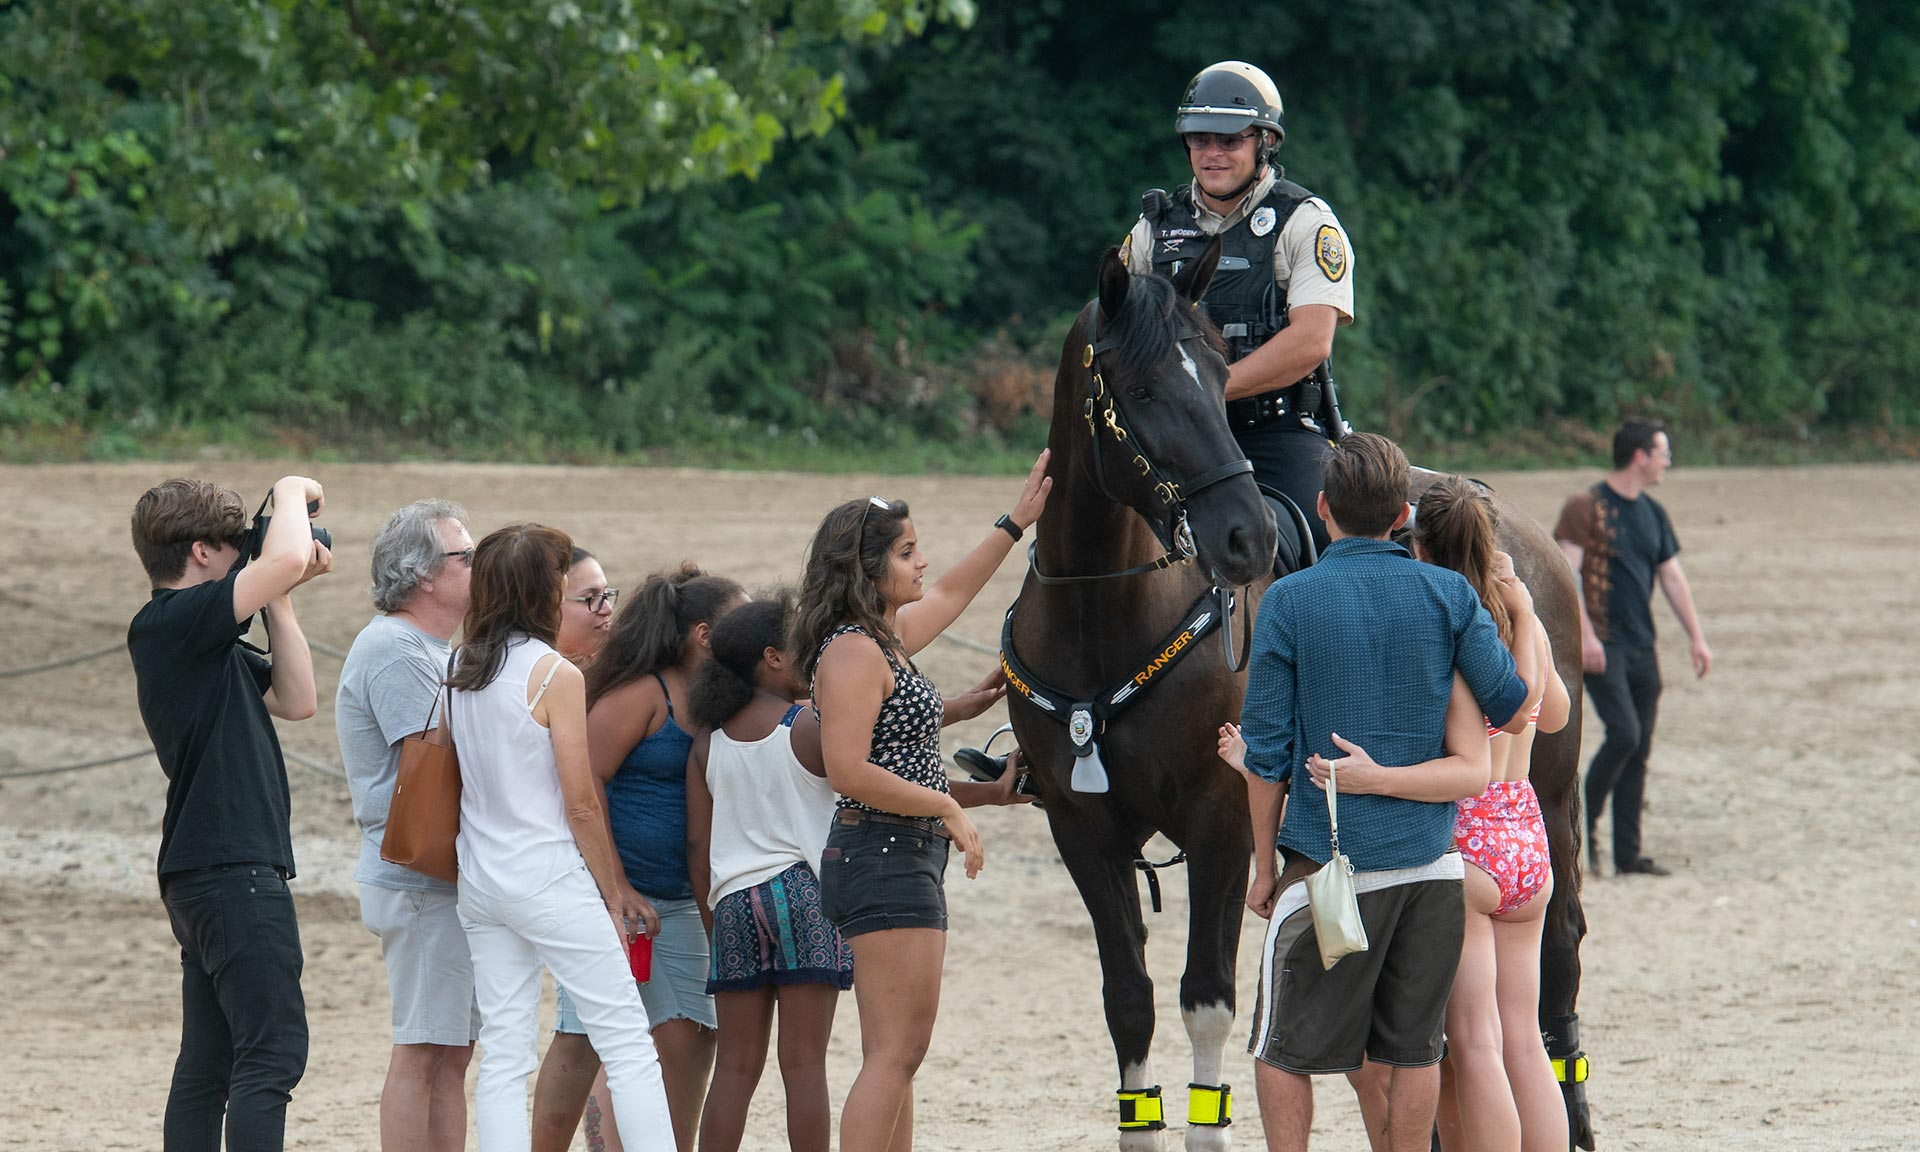 Mounted Ranger on the beach with a crowd